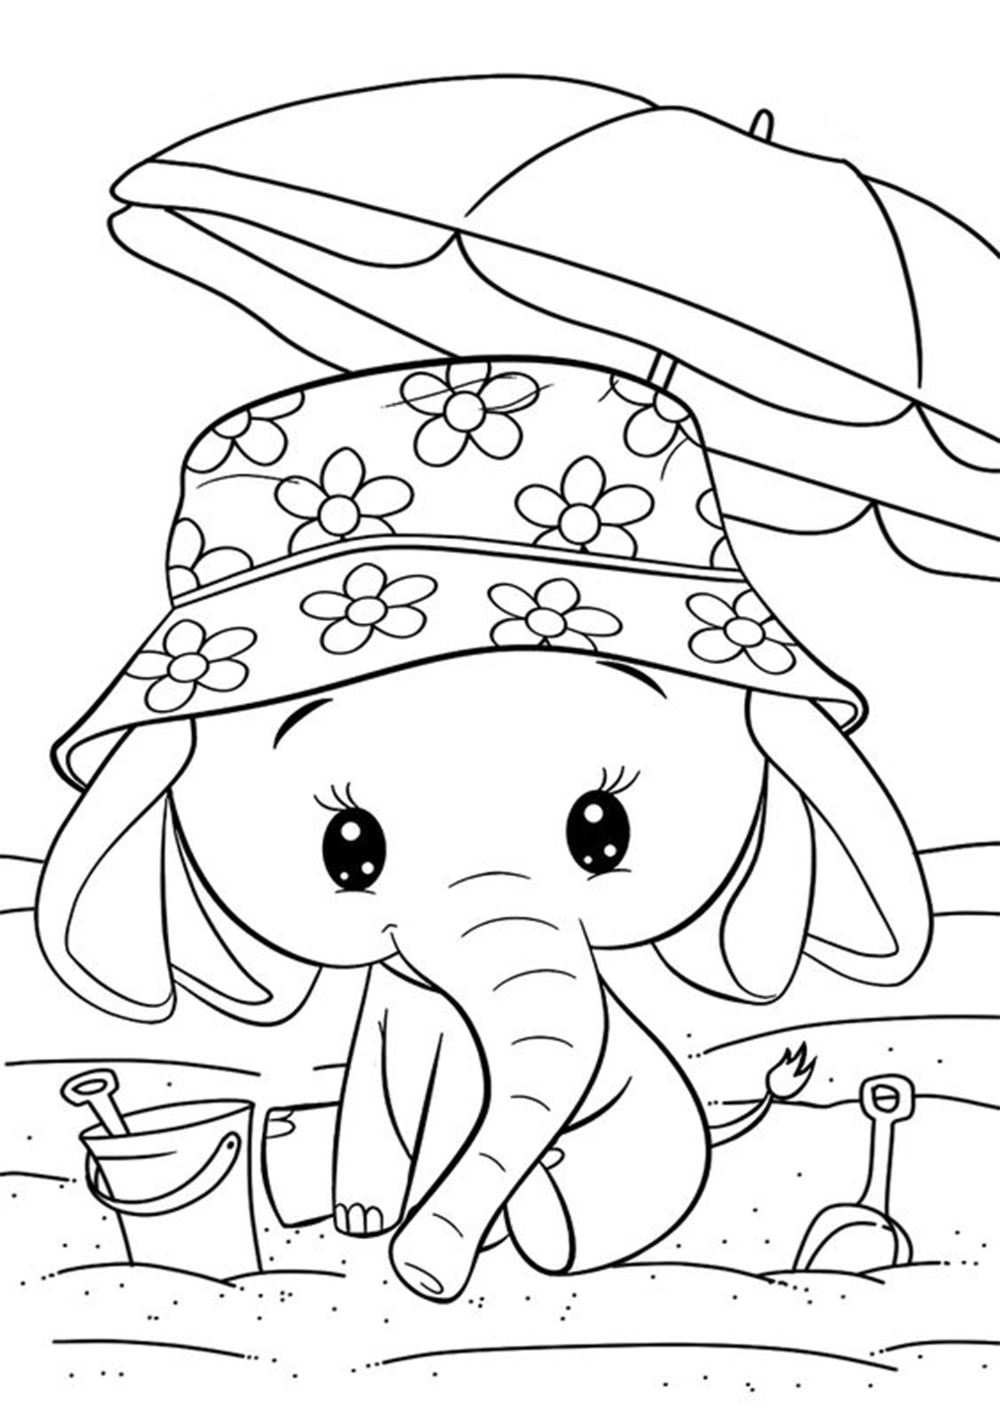 Cool Easy Coloring Pages Cute Elephant - PeepsBurgh